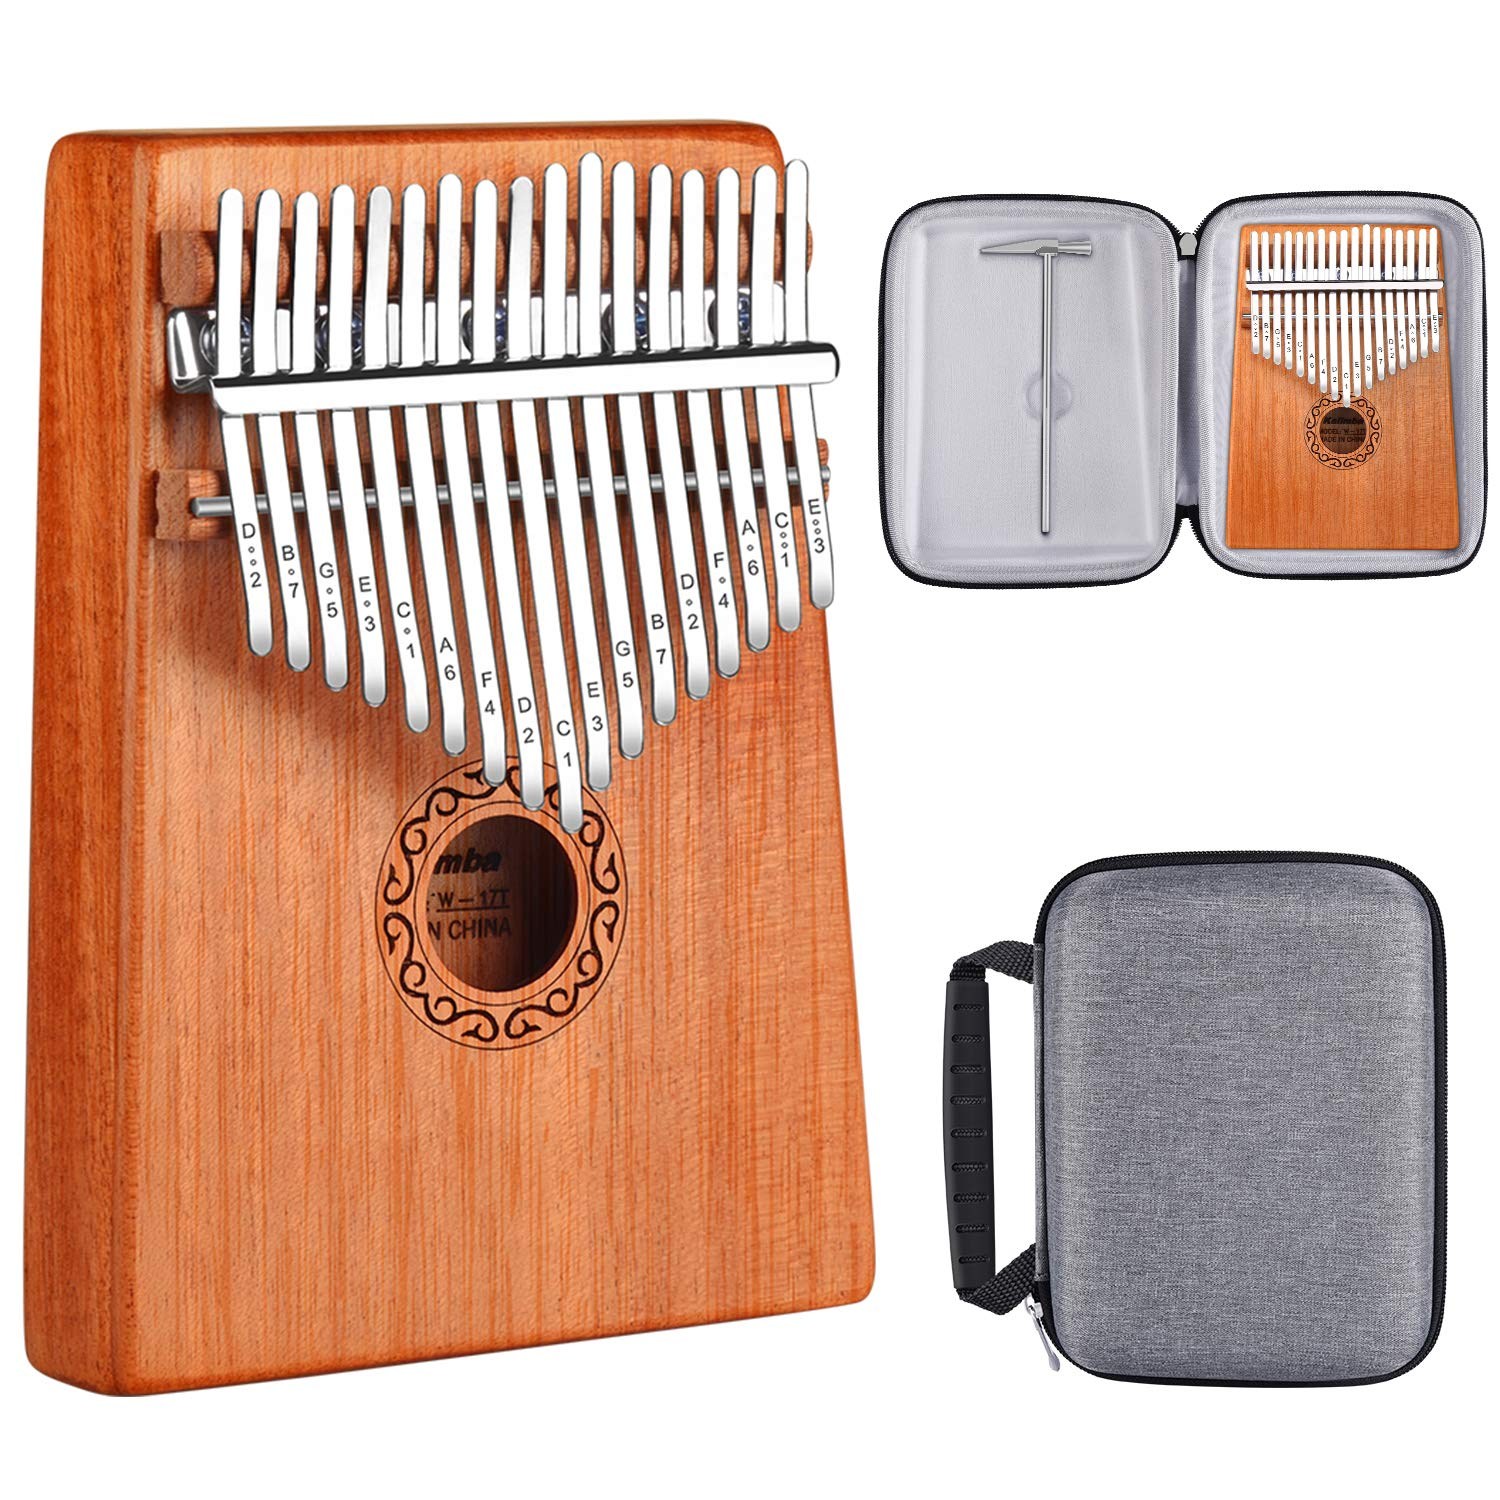 ATUP Kalimba 17 Keys Thumb Piano Solid Finger Piano Mahogany Body with Tuning Hammer Study Instruction Carry Case - Best Birthday Christmas Gift for Music Fans Kids Adults (Mahogany wood)